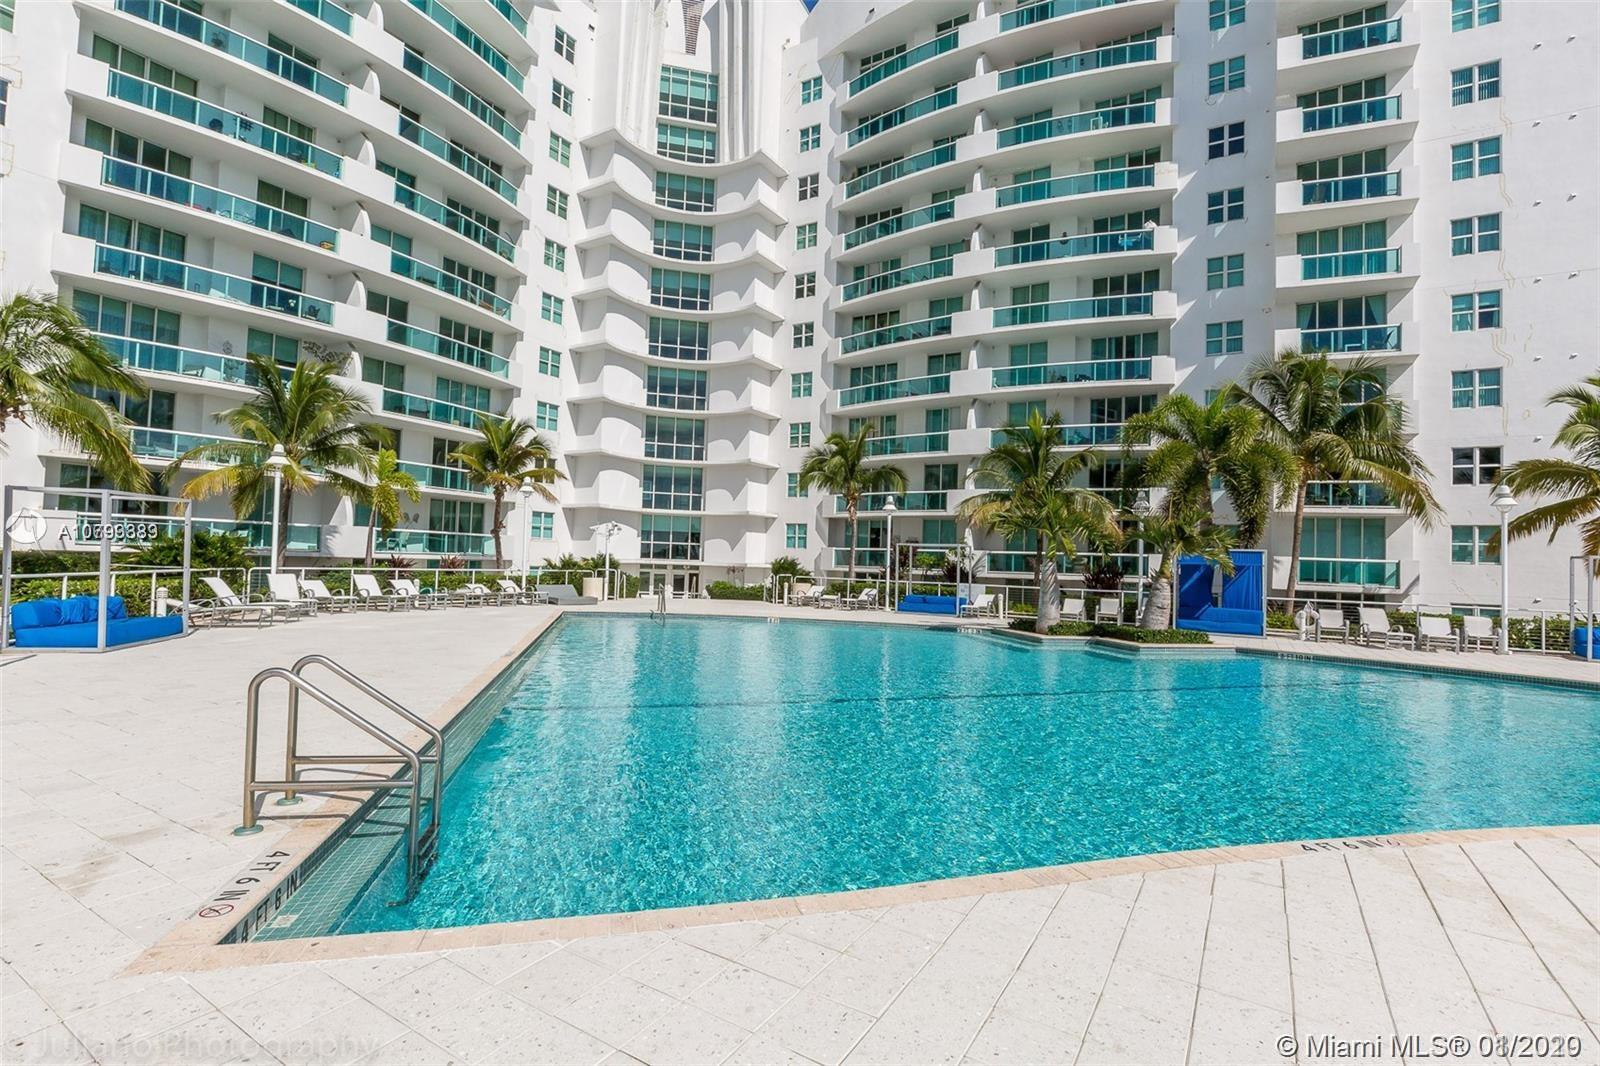 GREAT OPPORTUNITY!!!!!!!!! SALE PRICE THAT WON'T LAST LUXURY WATER FRONT UNIT 2 BED / 2 BATH IN NORTH BAY VILLAGE. MODERN KITCHEN WITH GRANITE COUNTER TOP AND STAINLESS STEEL APPLIANCES. ROMAN TUB IN MASTER BATH ROOM. LARGE BALCONY AND BREATHTAKING VIEWS FROM EVERY ROOM IN UNIT. THIS COMMUNITY OFFERS AMAZING AMENITIES INCLUDING GYM, SAUNA, 2 POOLS, CLUB HOUSE, 24 HRS GATED SECURITY WITH VALET, LOTS OF GUEST PARKING AND A PRIVATE MARINA.